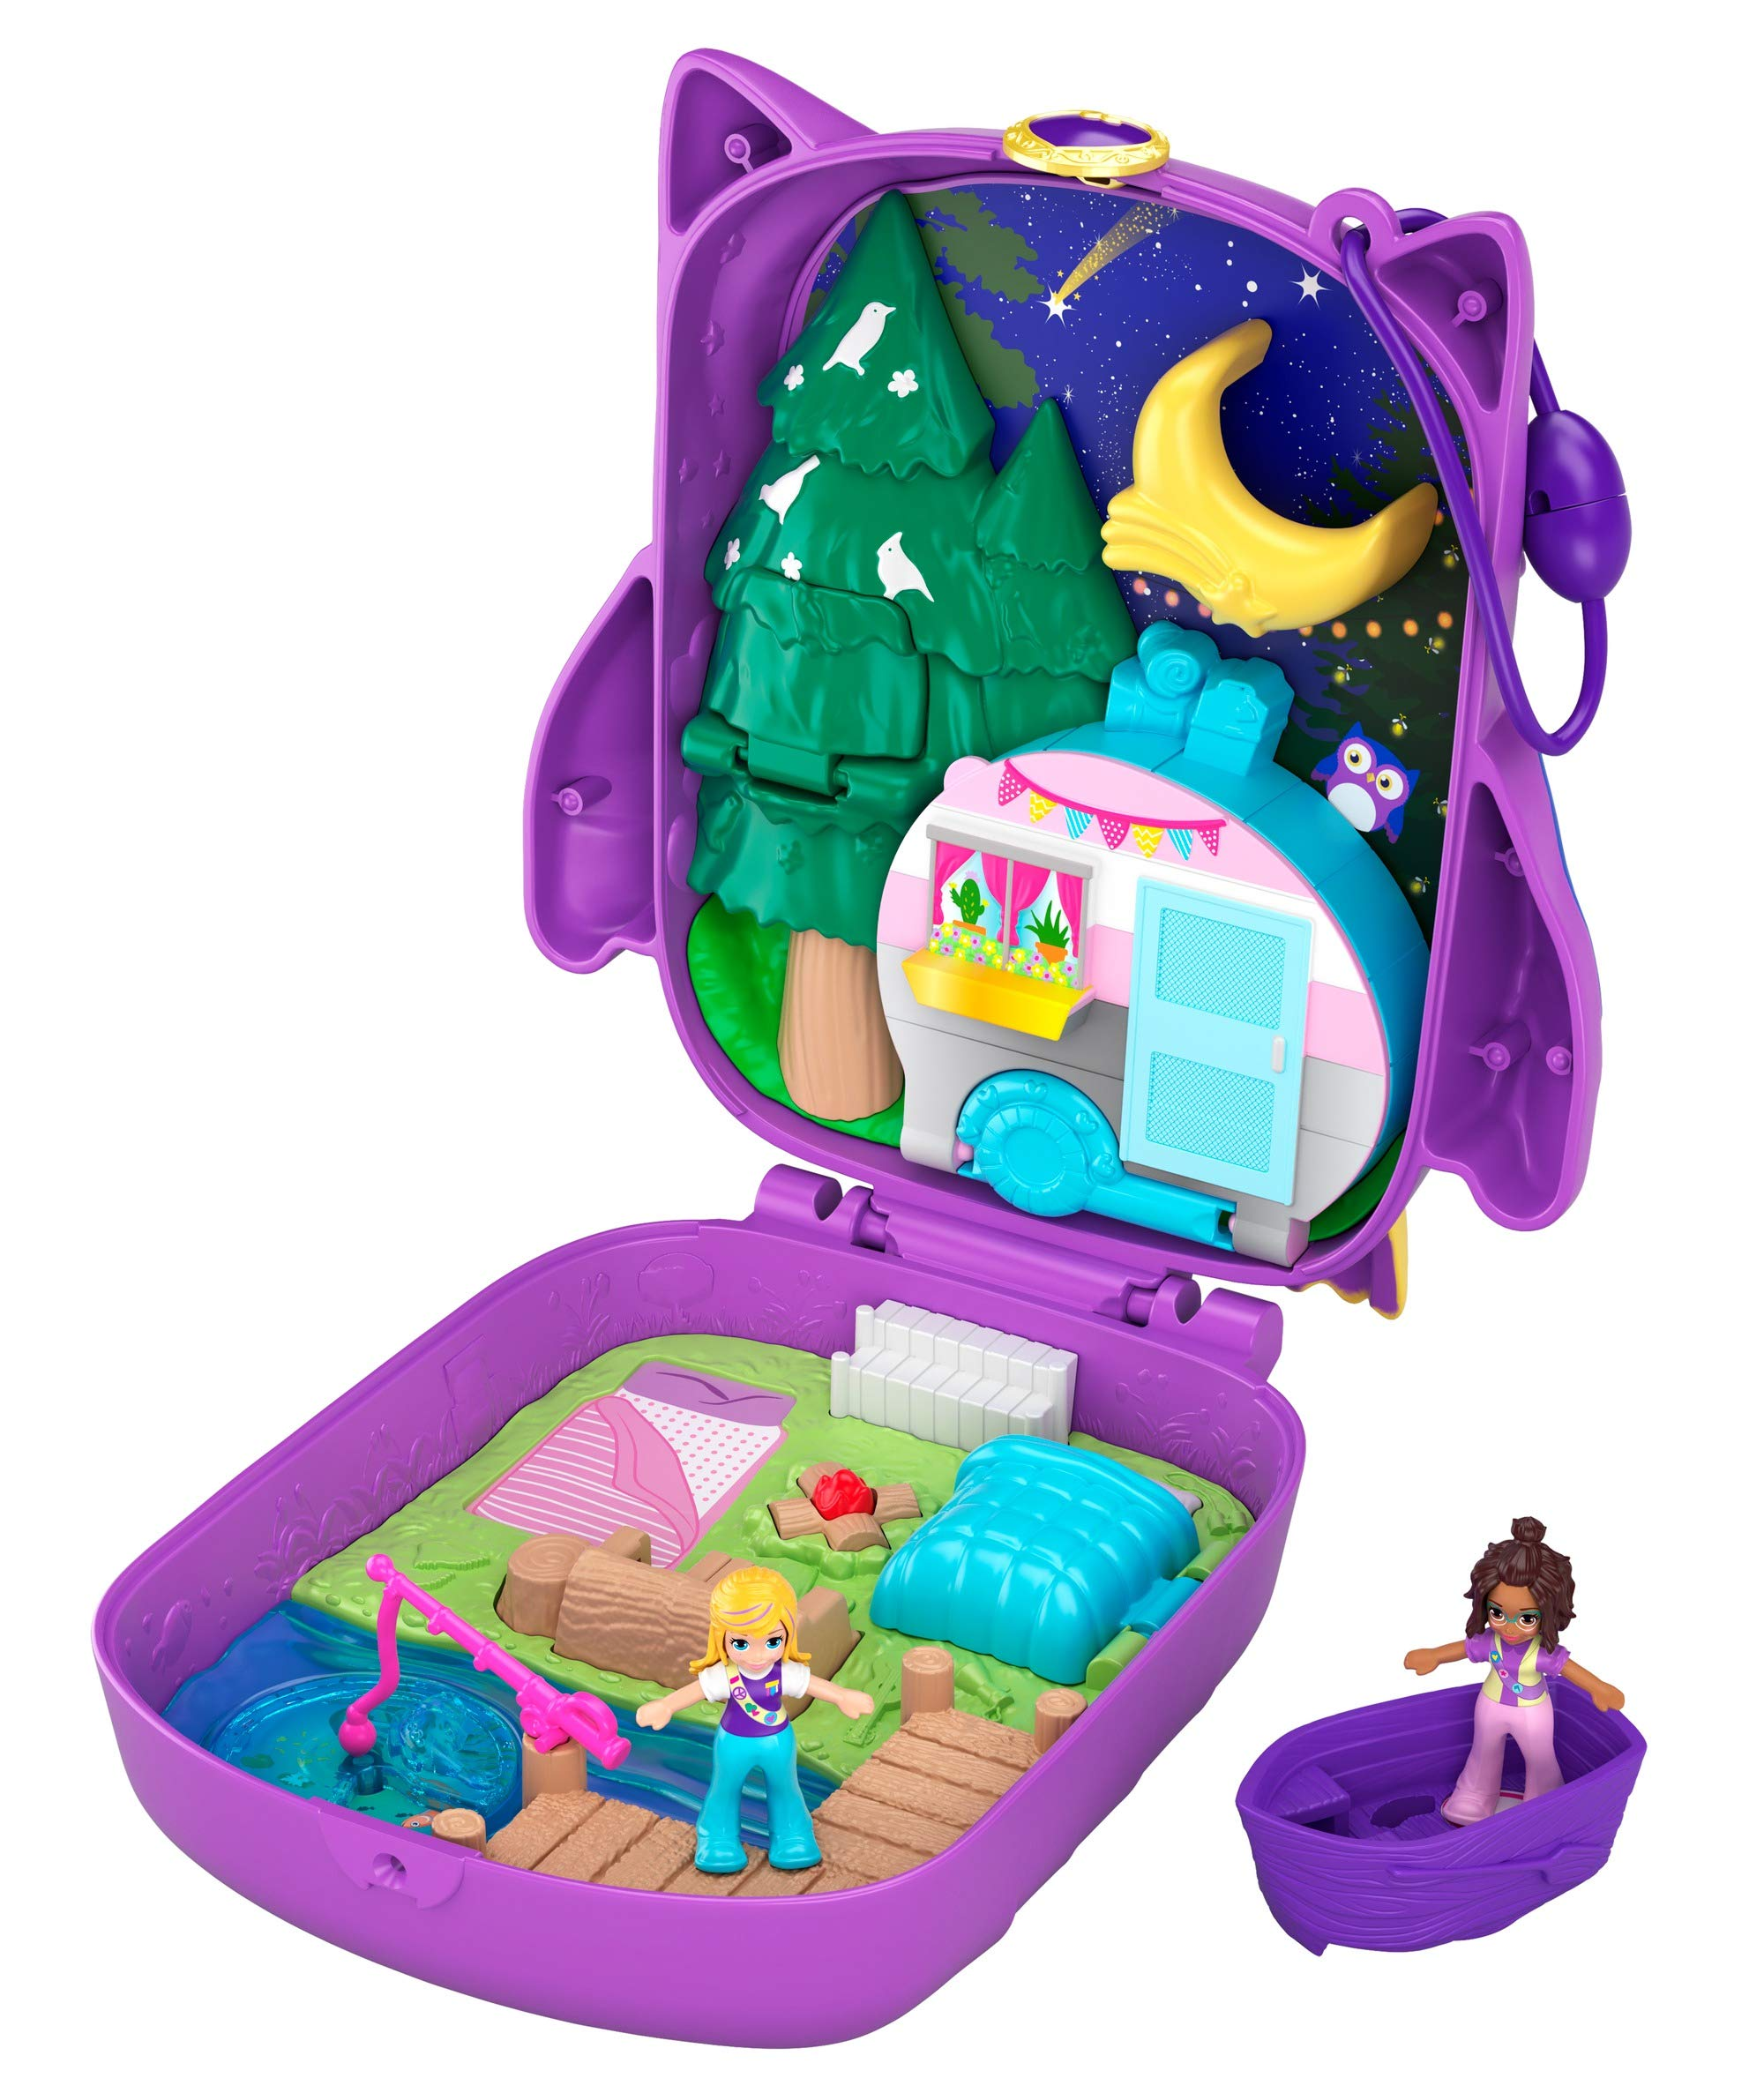 Polly Pocket Pocket World Owlnite Campsite Compact with Fun Reveals, Micro Polly and Shani Dolls, Boat and Sticker Sheet for Ages 4 and Up [Amazon Exclusive]